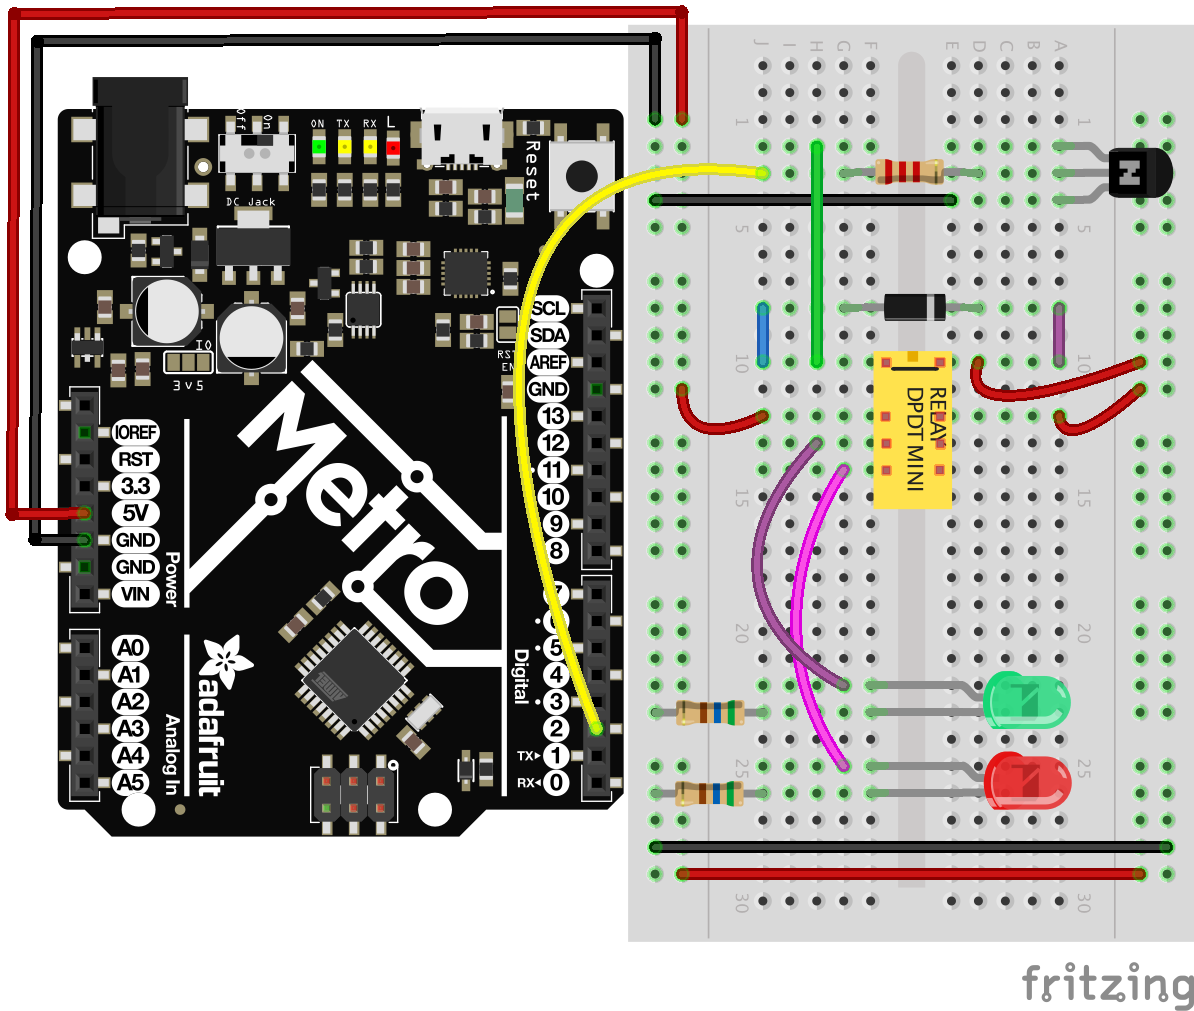 adafruit_products_circ11_bb.png